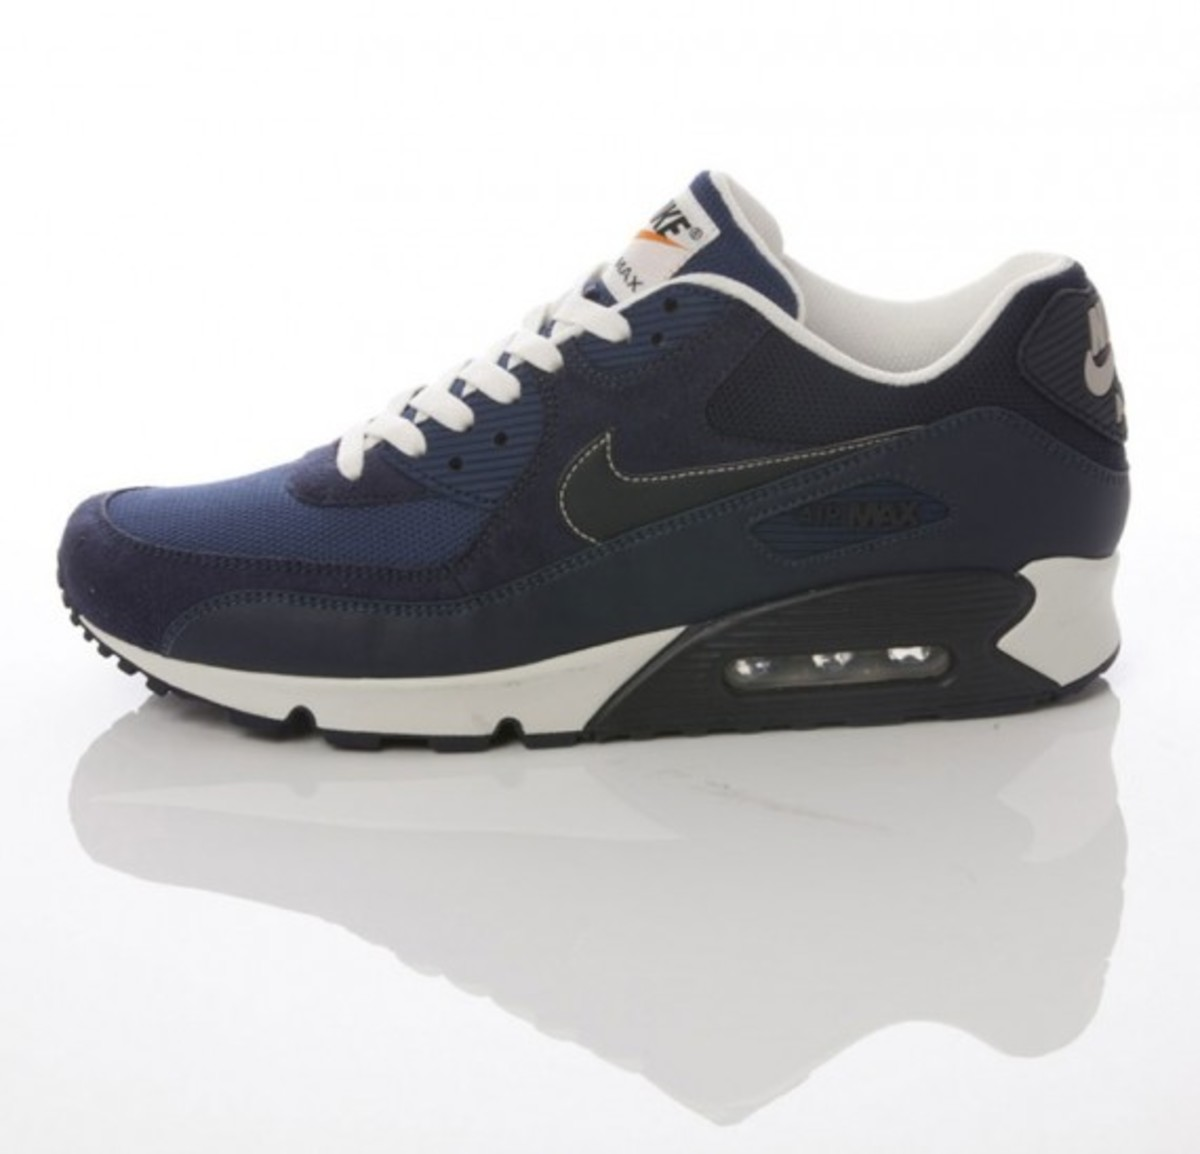 nike-sportswear-grey-navy-collection-09